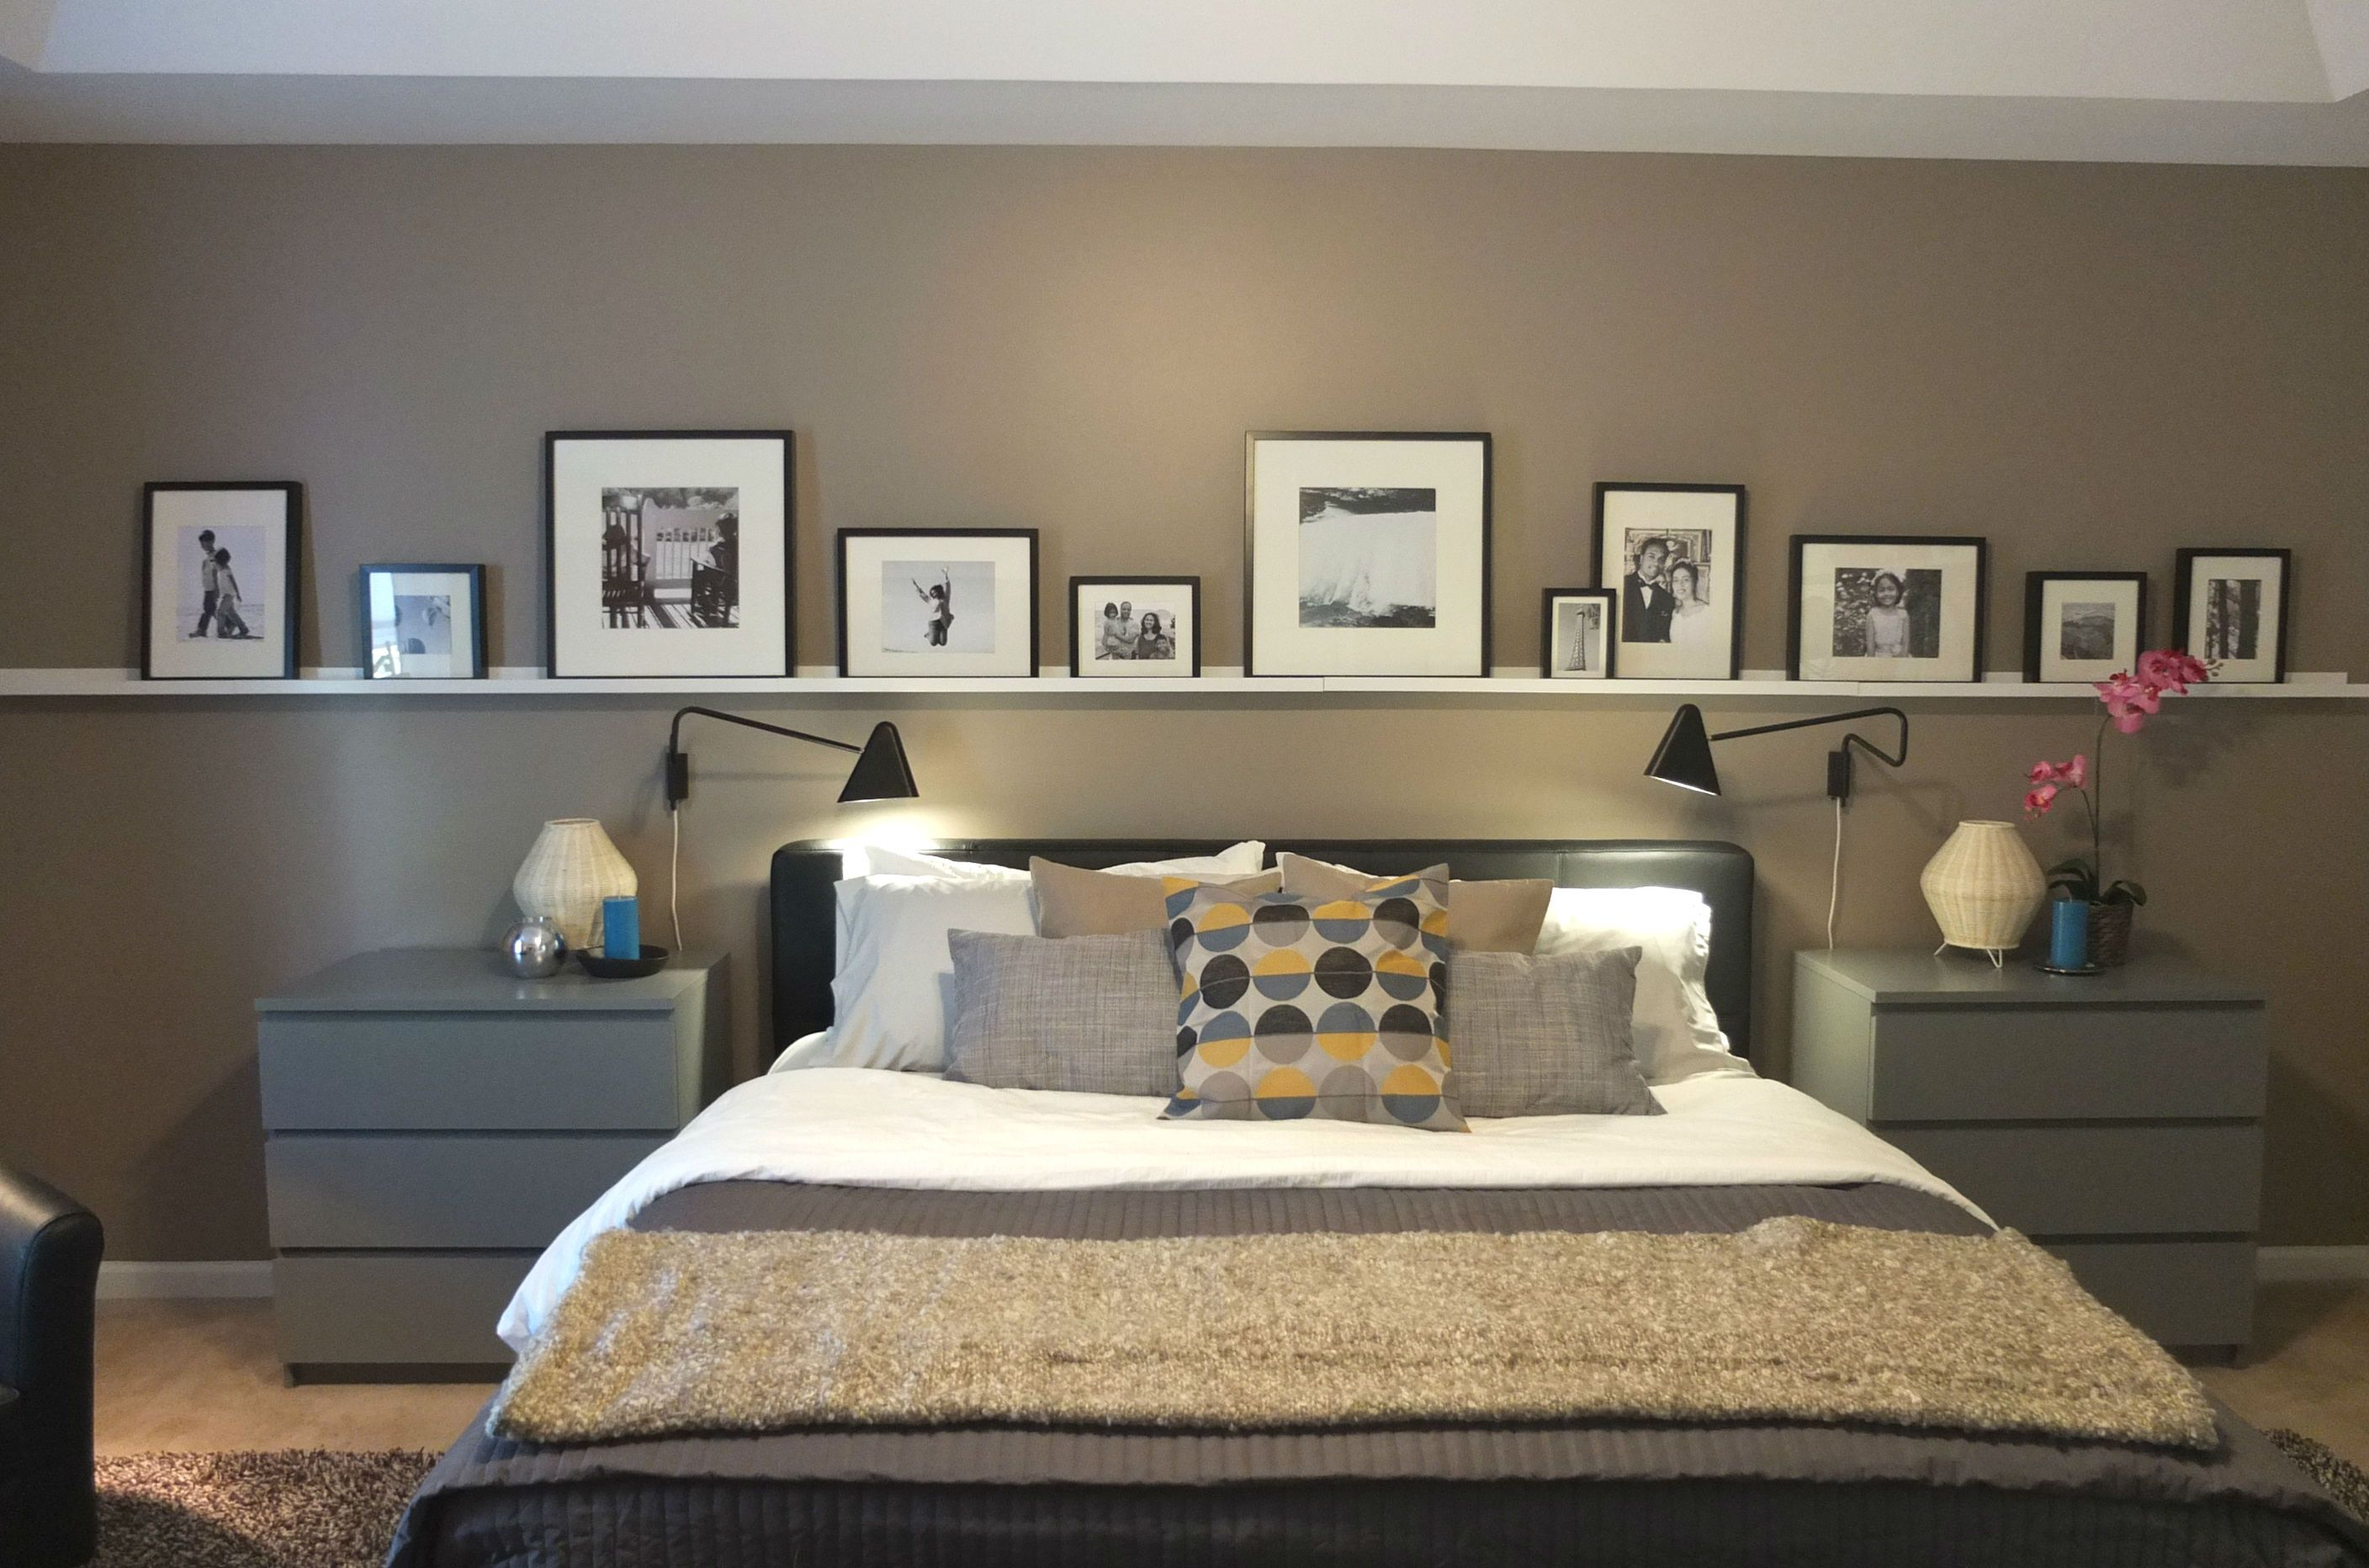 Us Furniture And Home Furnishings Home Bedroom Home Decor Home